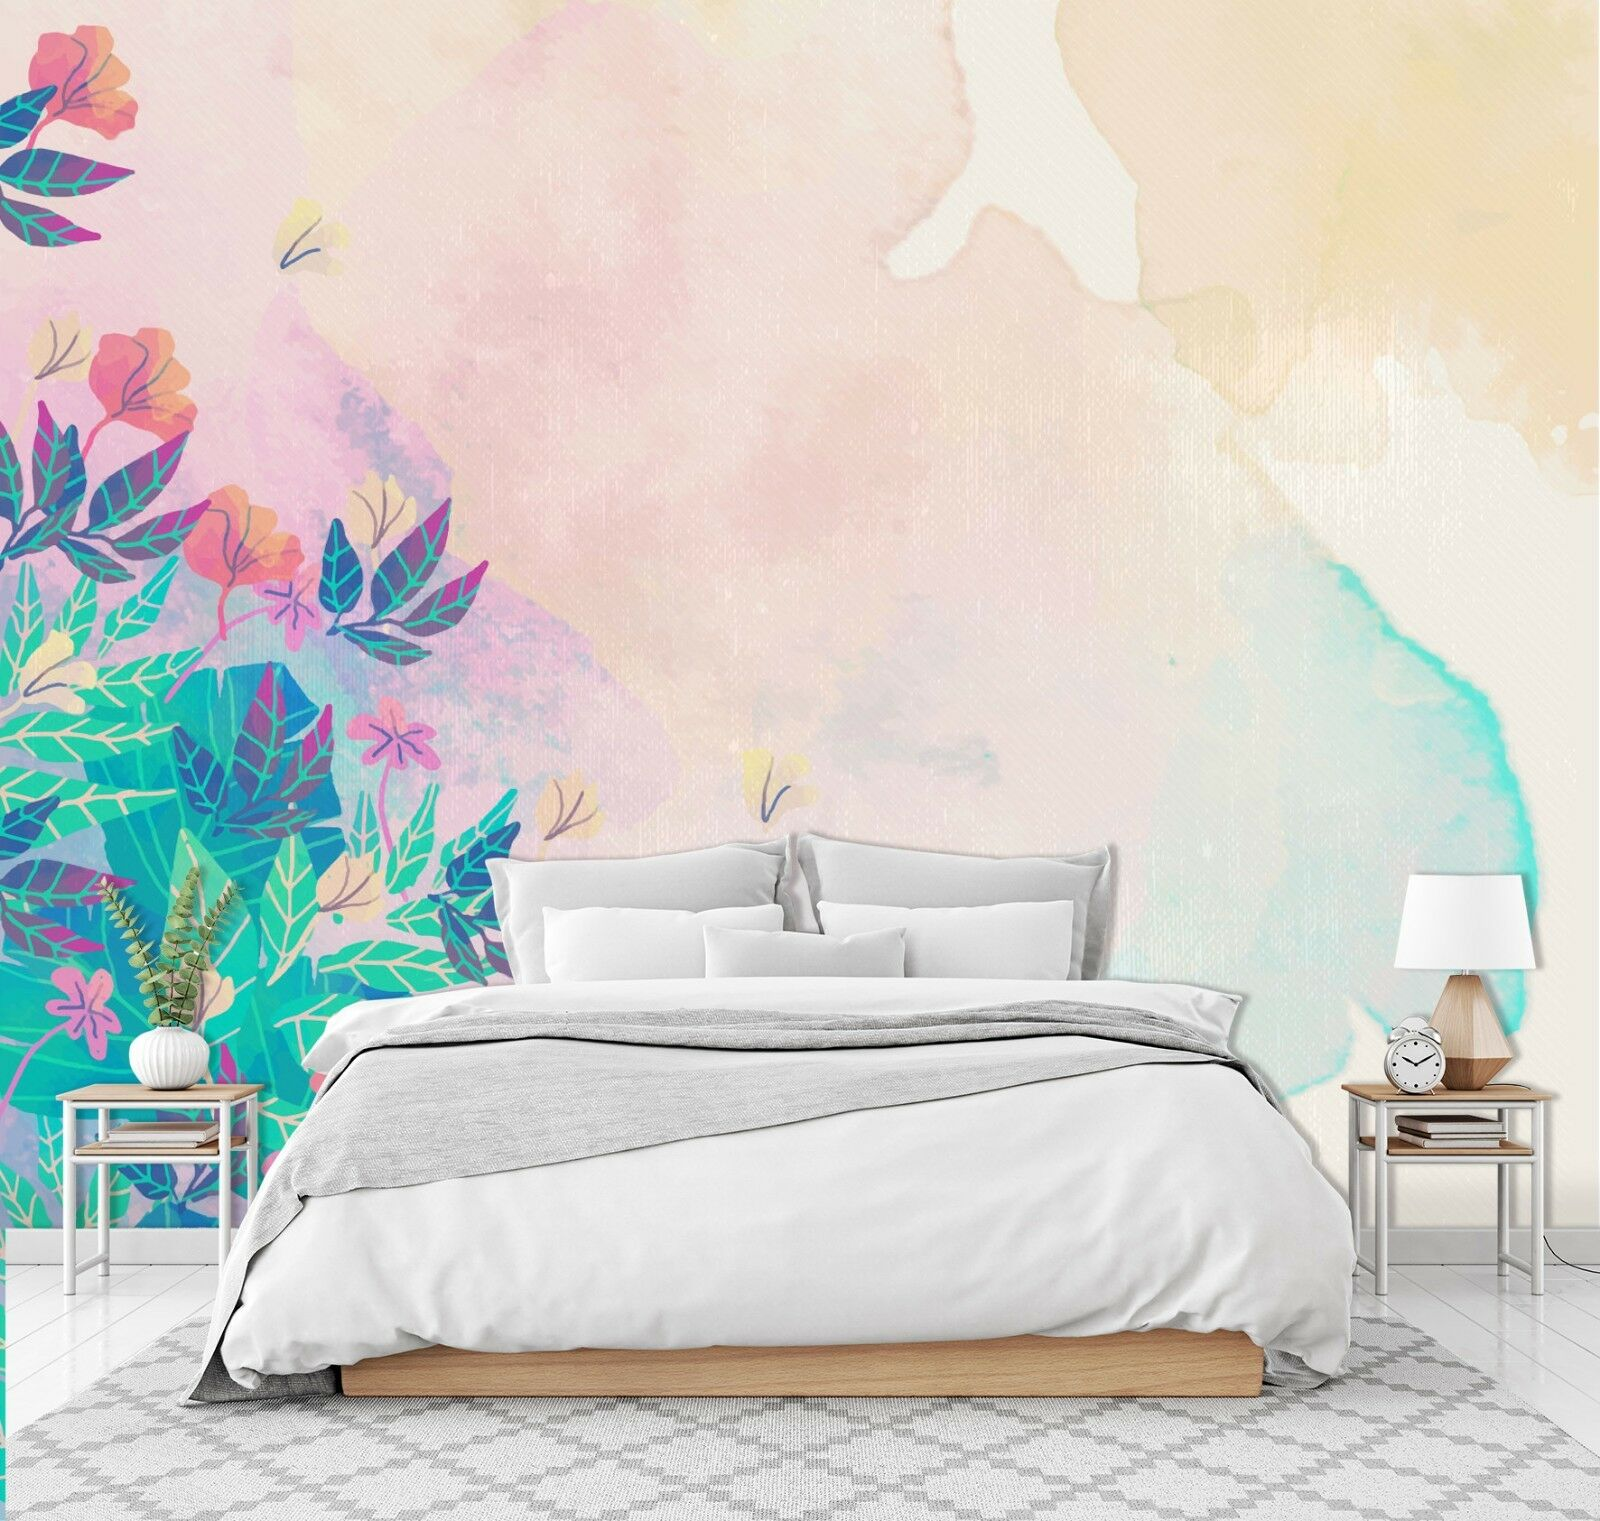 3D Spring Blossoms 84 Wall Paper Exclusive MXY Wallpaper Mural Decal Indoor Wall